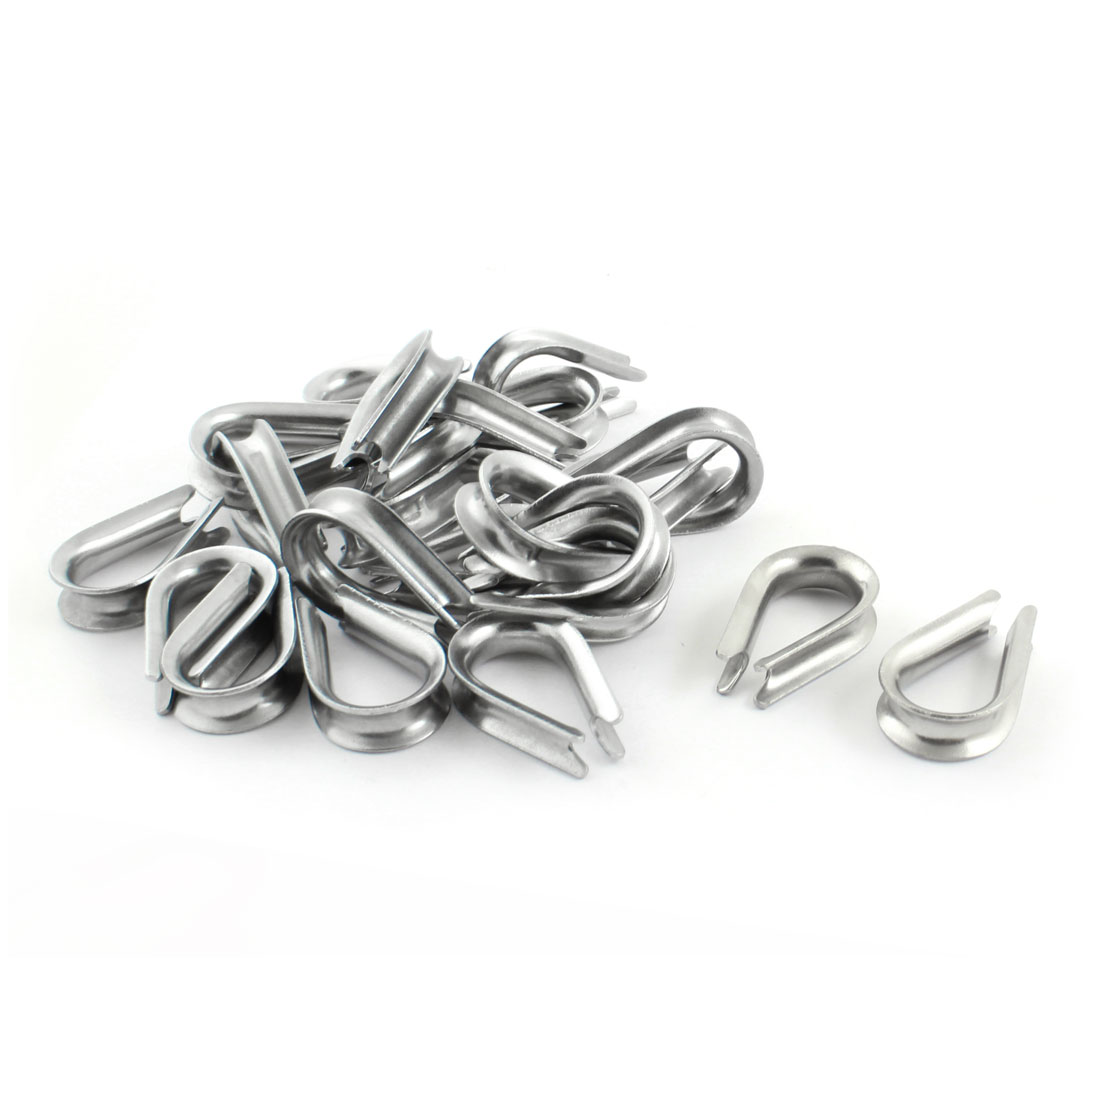 25PCS Silver Tone Stainless Steel Cable Thimbles for 8mm 3/8 Inch Wire Rope